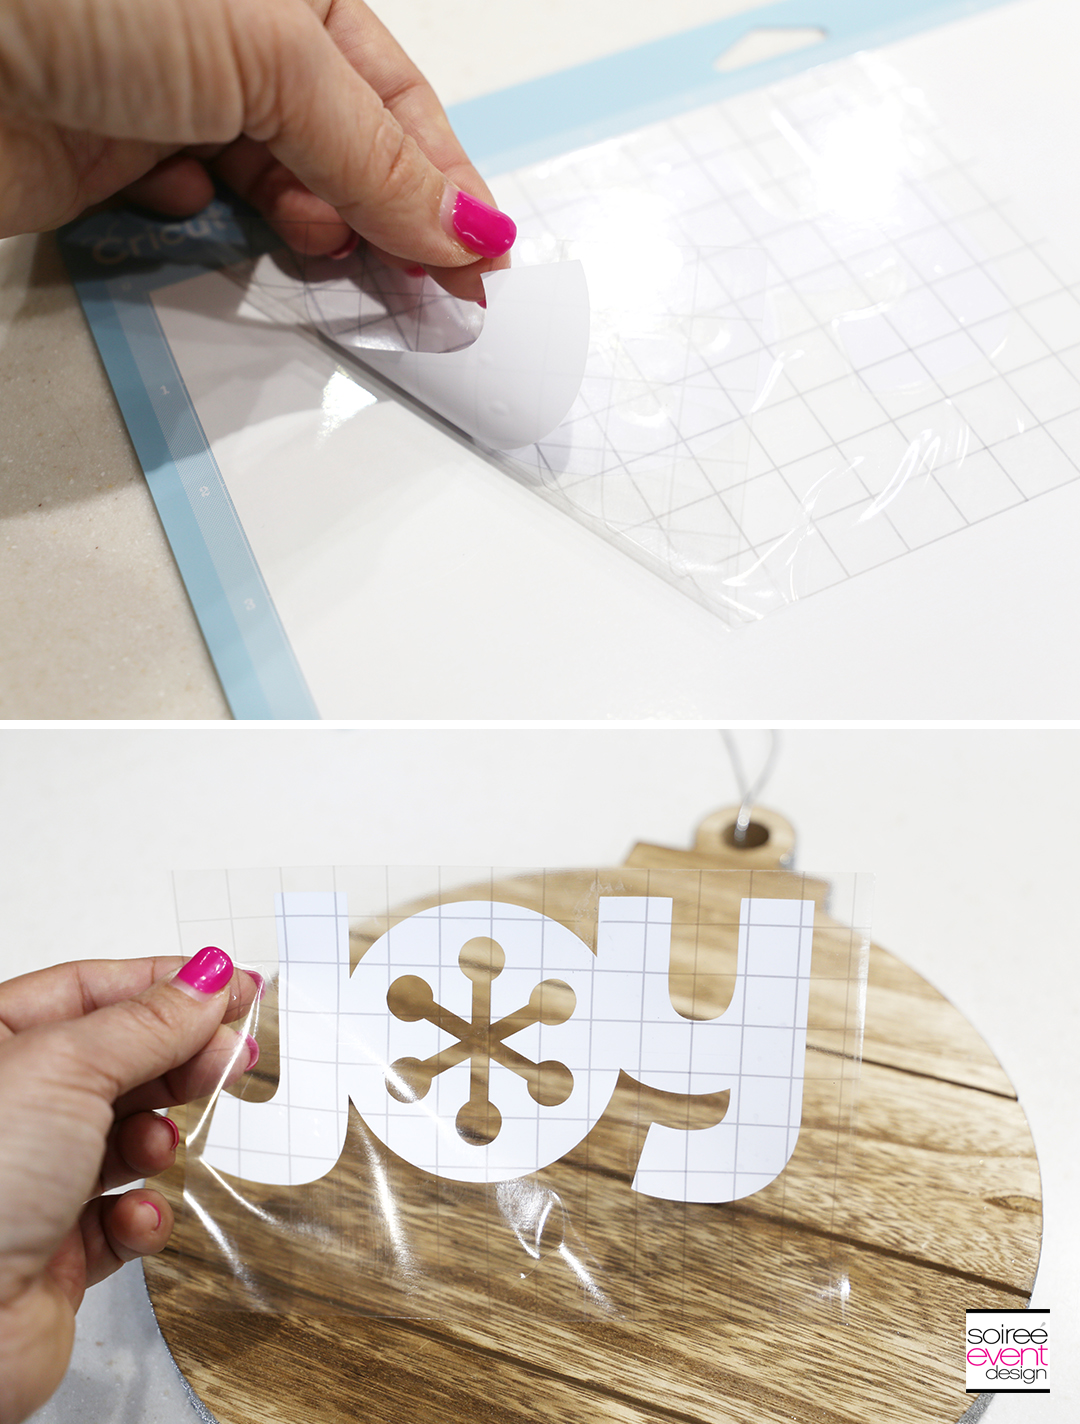 Cricut Farmhouse Holiday Decorations - Step 3C